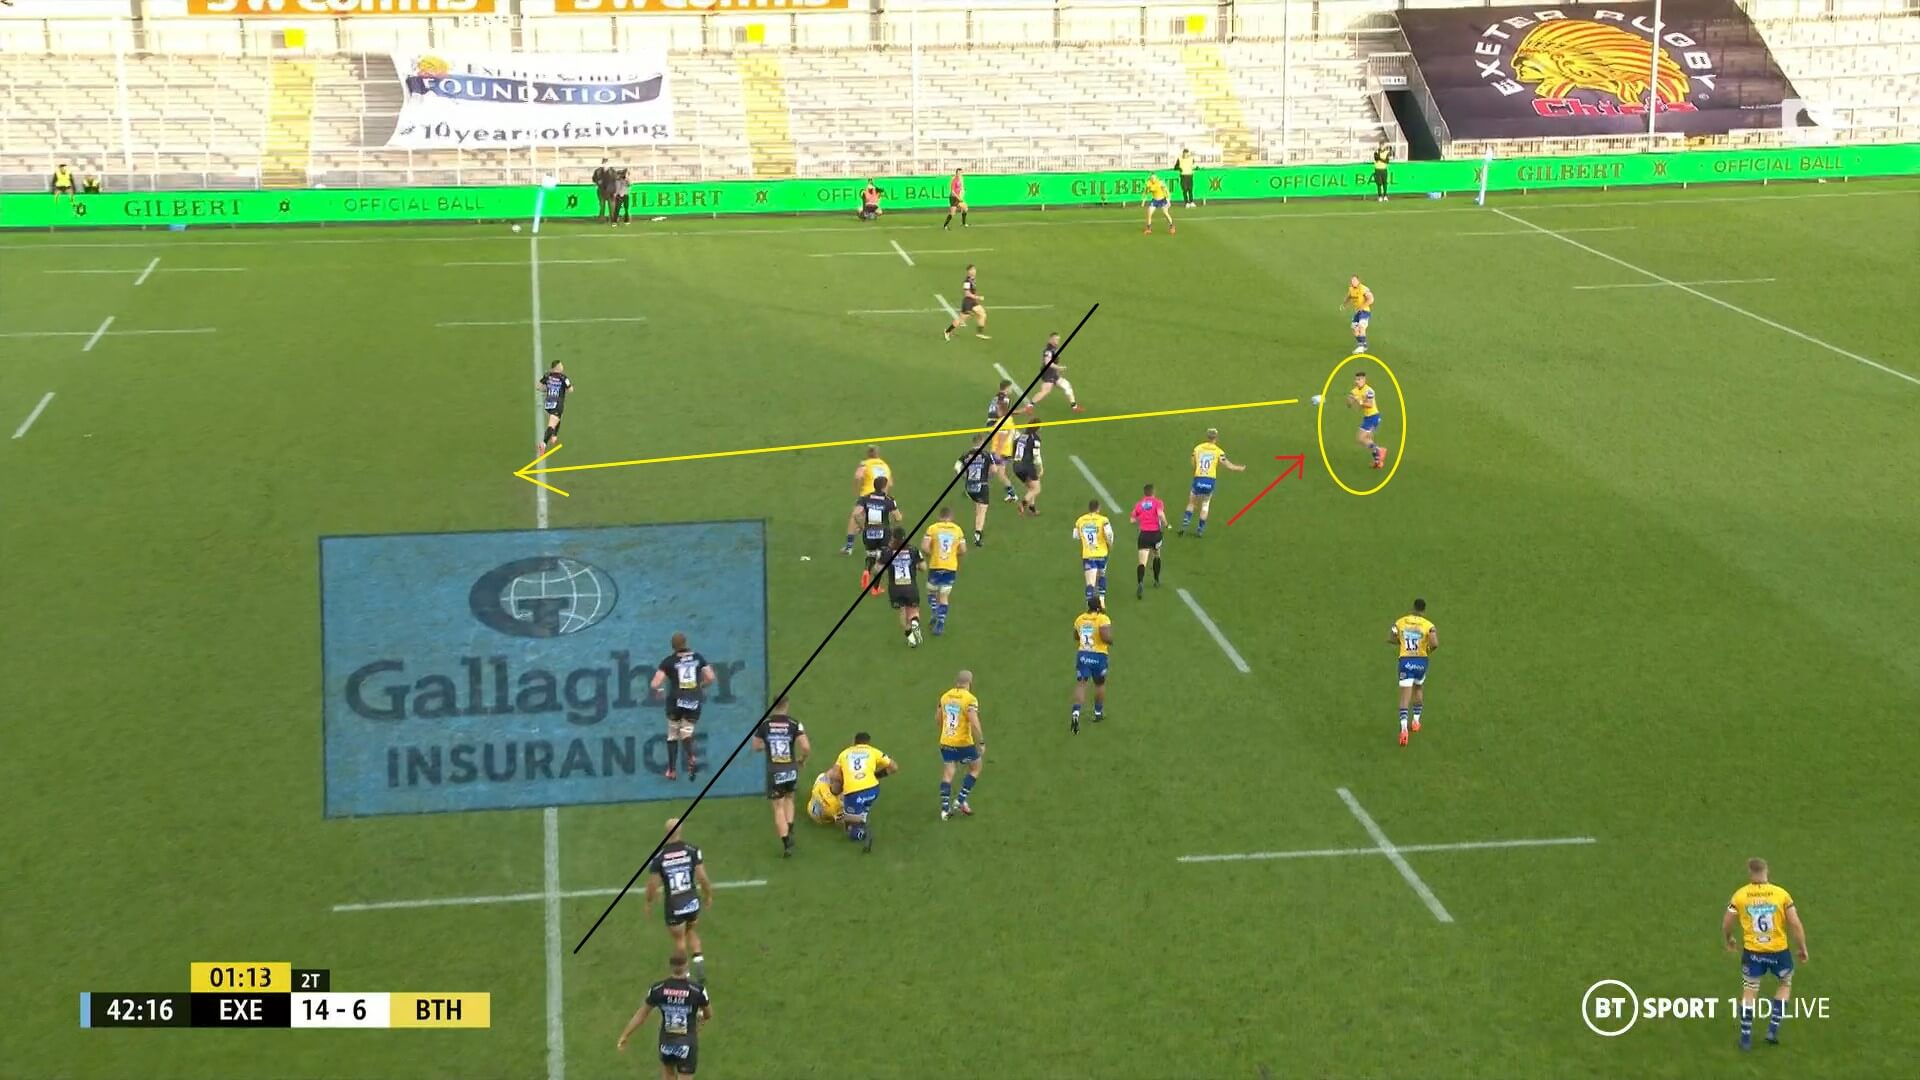 English Premiership 2019/2020: Exeter Chiefs v Bath - tactical analysis tactics